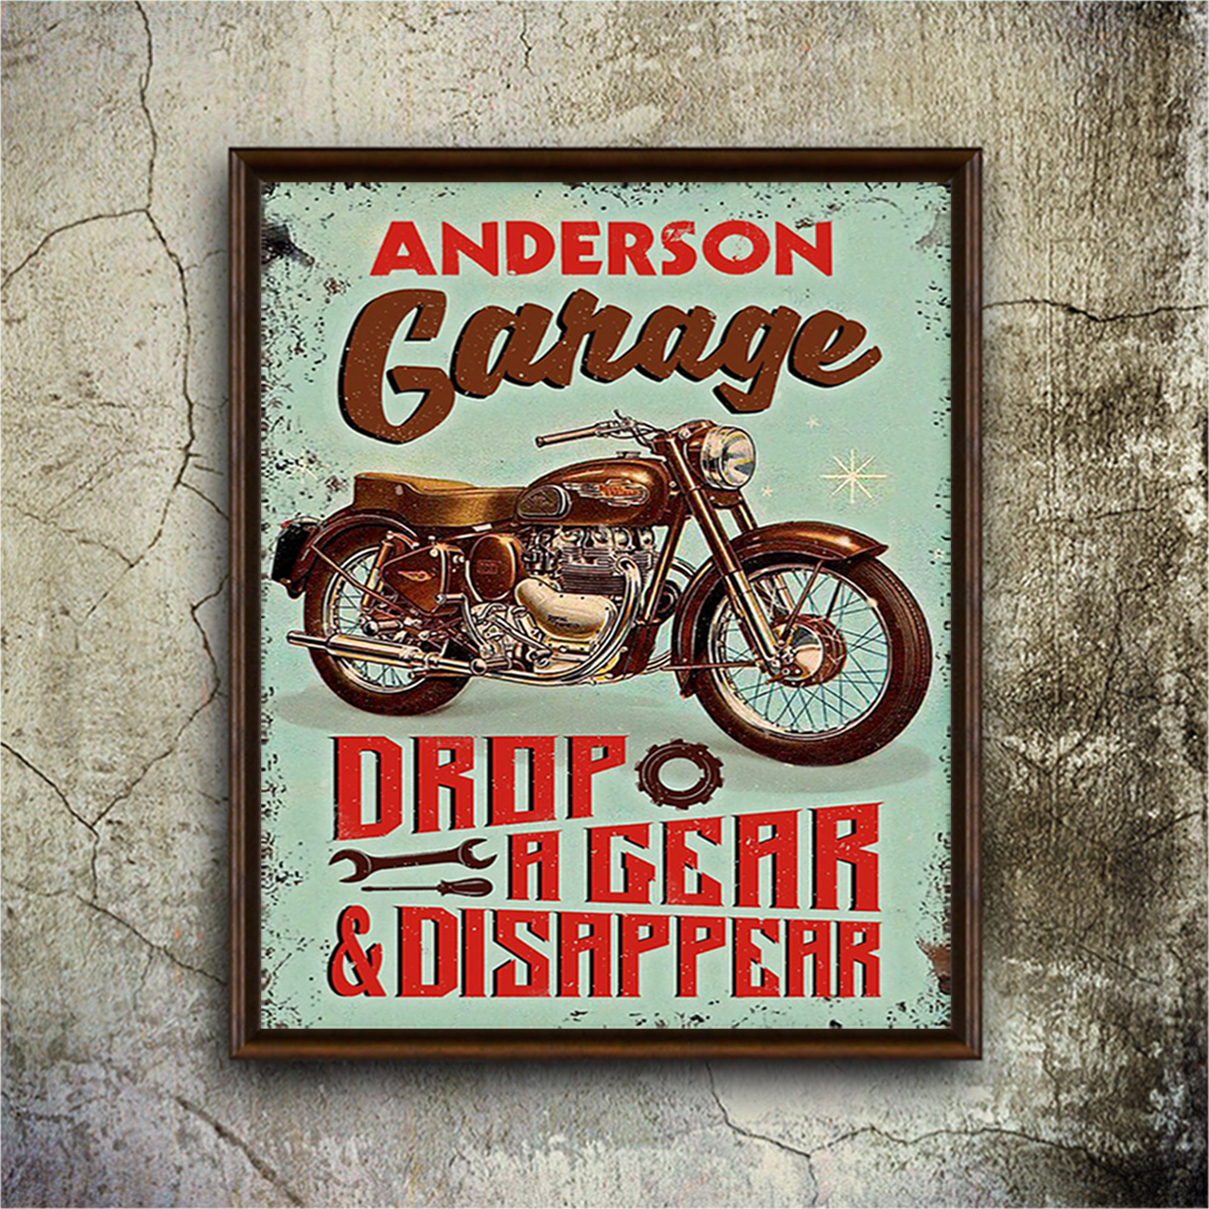 Personalized custom name motorcycle garage drop a gear and disappear poster A1